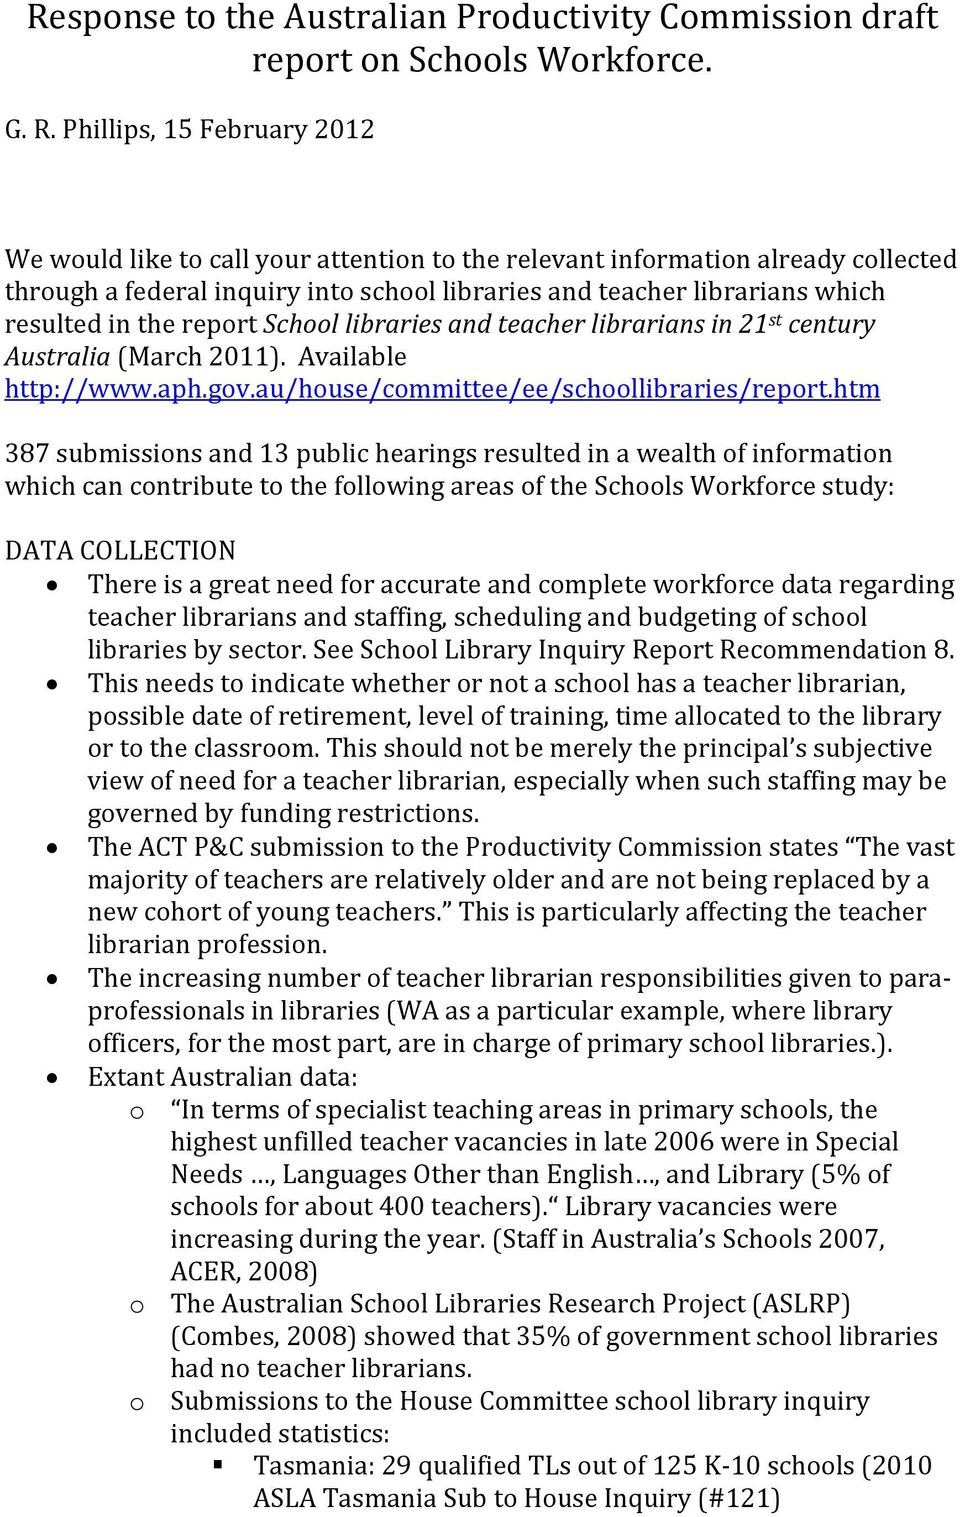 the report School libraries and teacher librarians in 21 st century Australia (March 2011). Available http://www.aph.gov.au/house/committee/ee/schoollibraries/report.